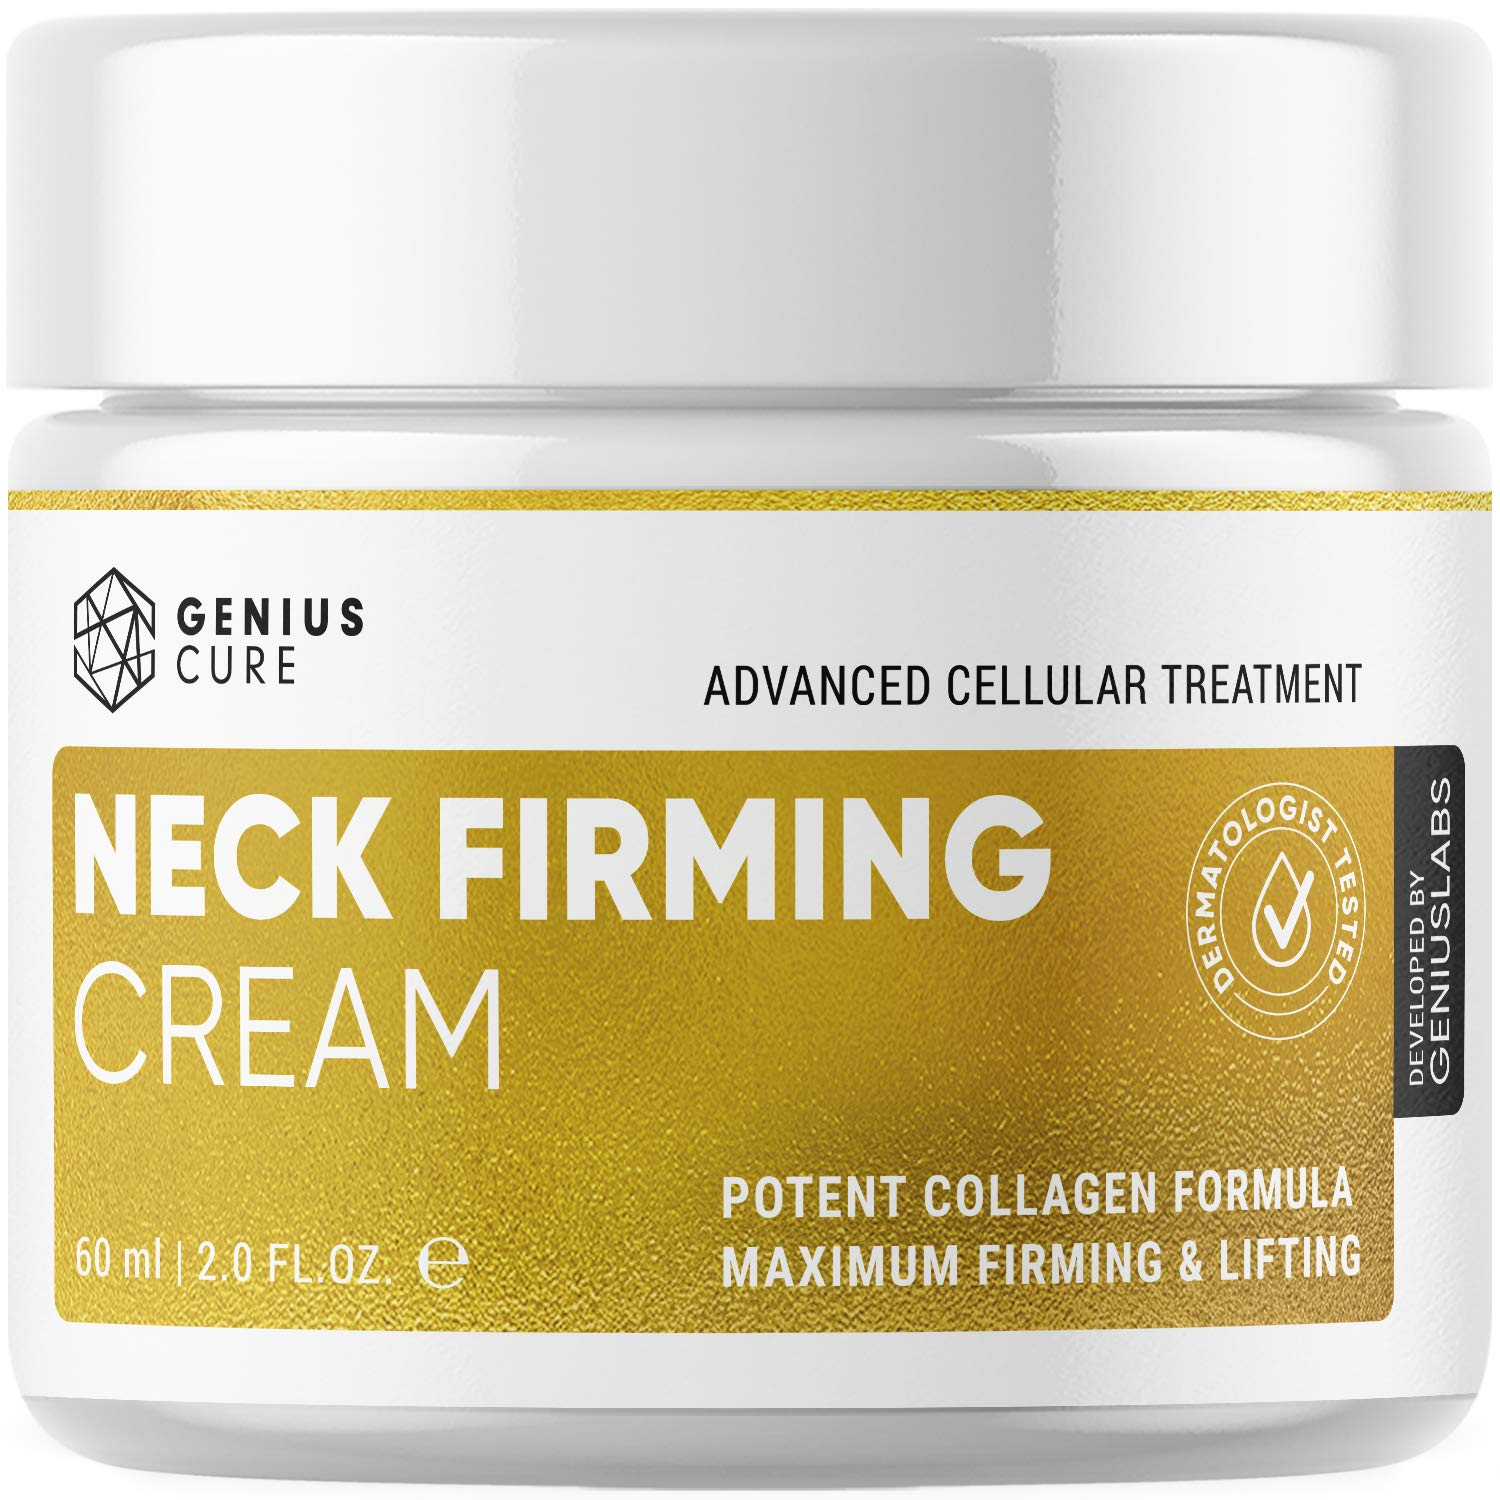 Neck Firming Cream, Anti Aging Moisturizer, Skin Tightening and Crepe Skin Repair Cream, Double Chin Reducer 2 Fl Oz.: Beauty